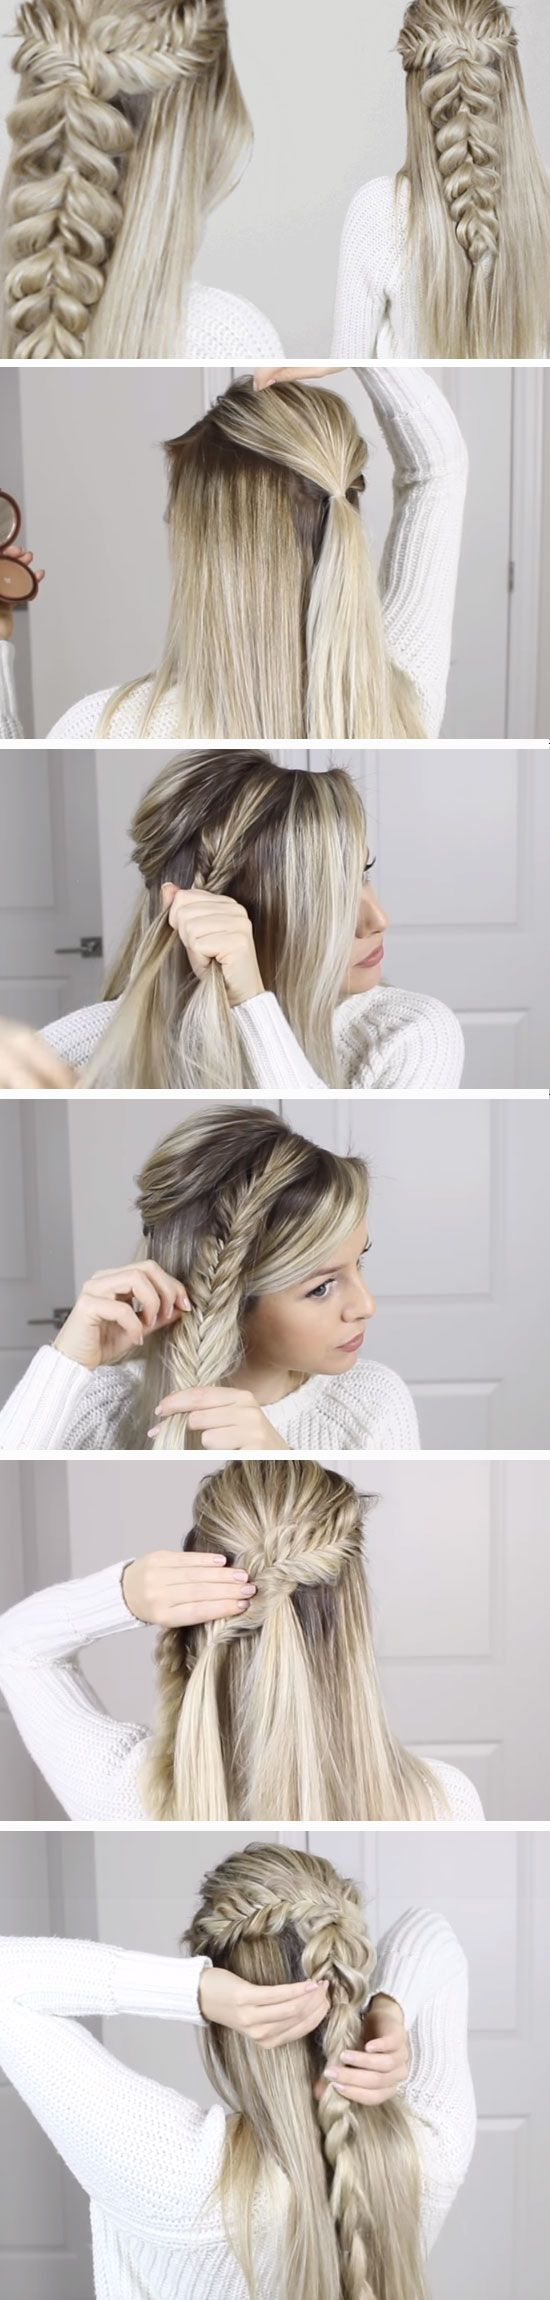 2785 best Braided Hairstyles images on Pinterest | Braided hairstyle ...